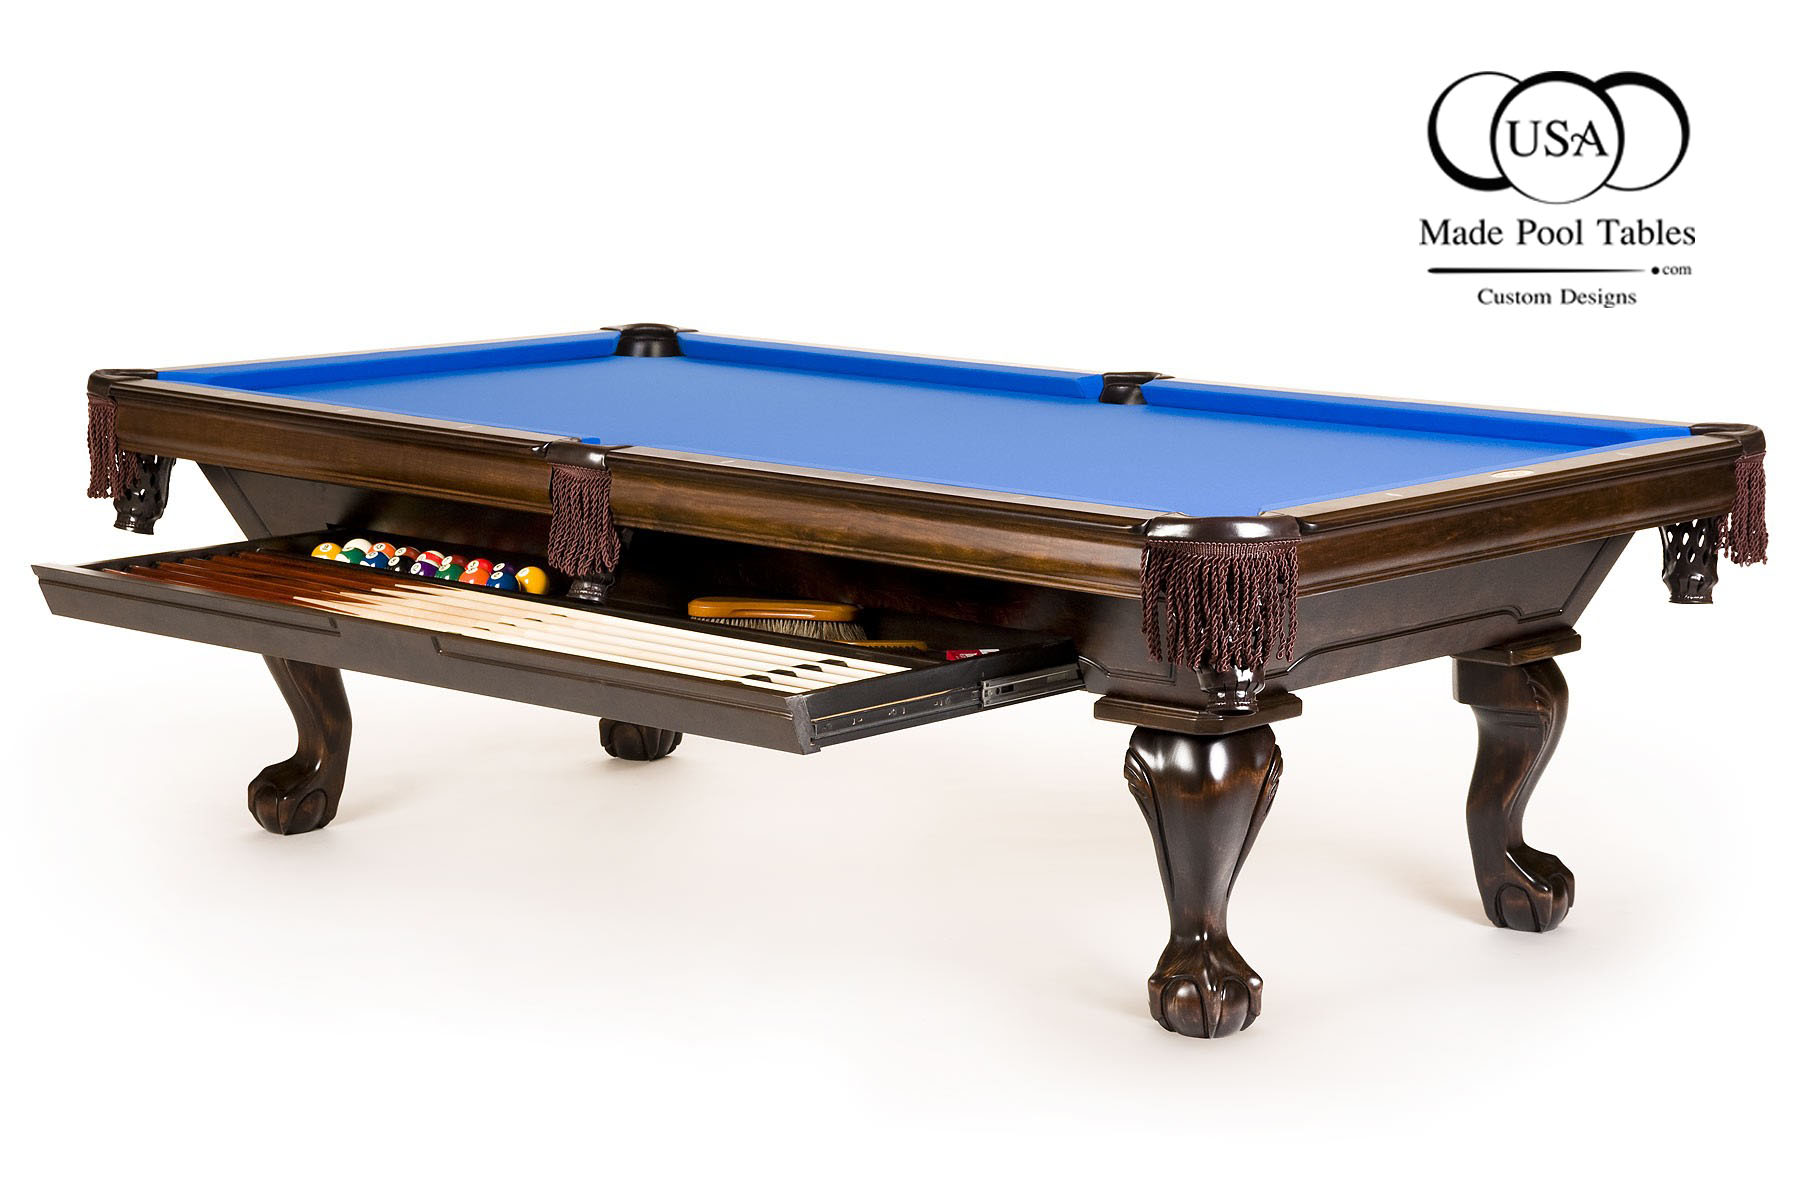 Pool Tables Pool Table Contemporary Pool Tables Modern Pool - Pool table movers az